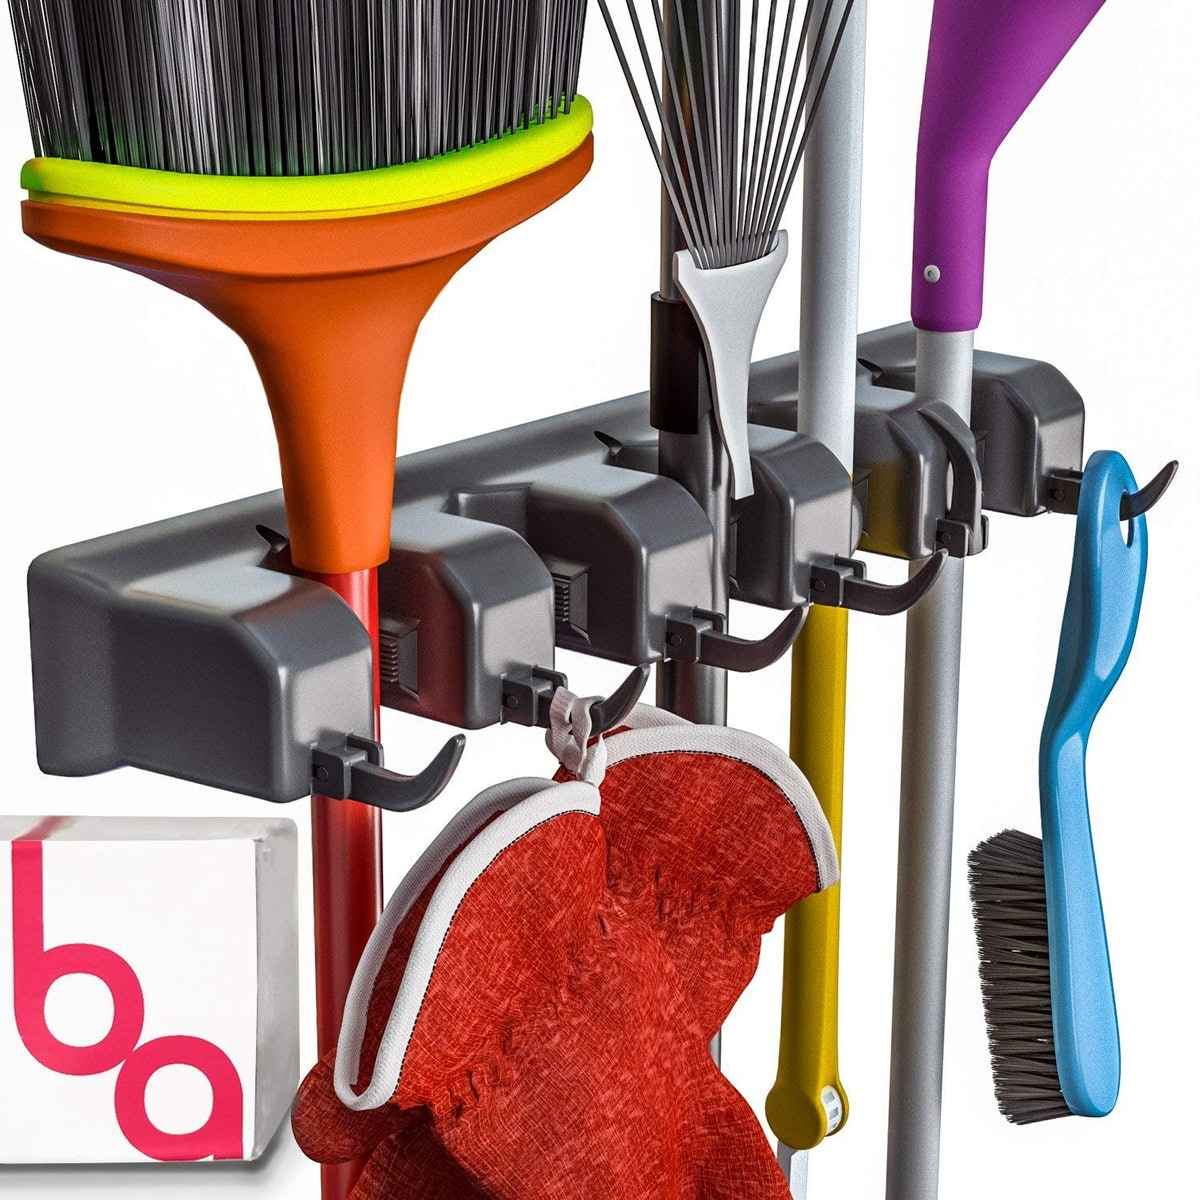 Berry Ave. Broom And Garden Tool Organizer